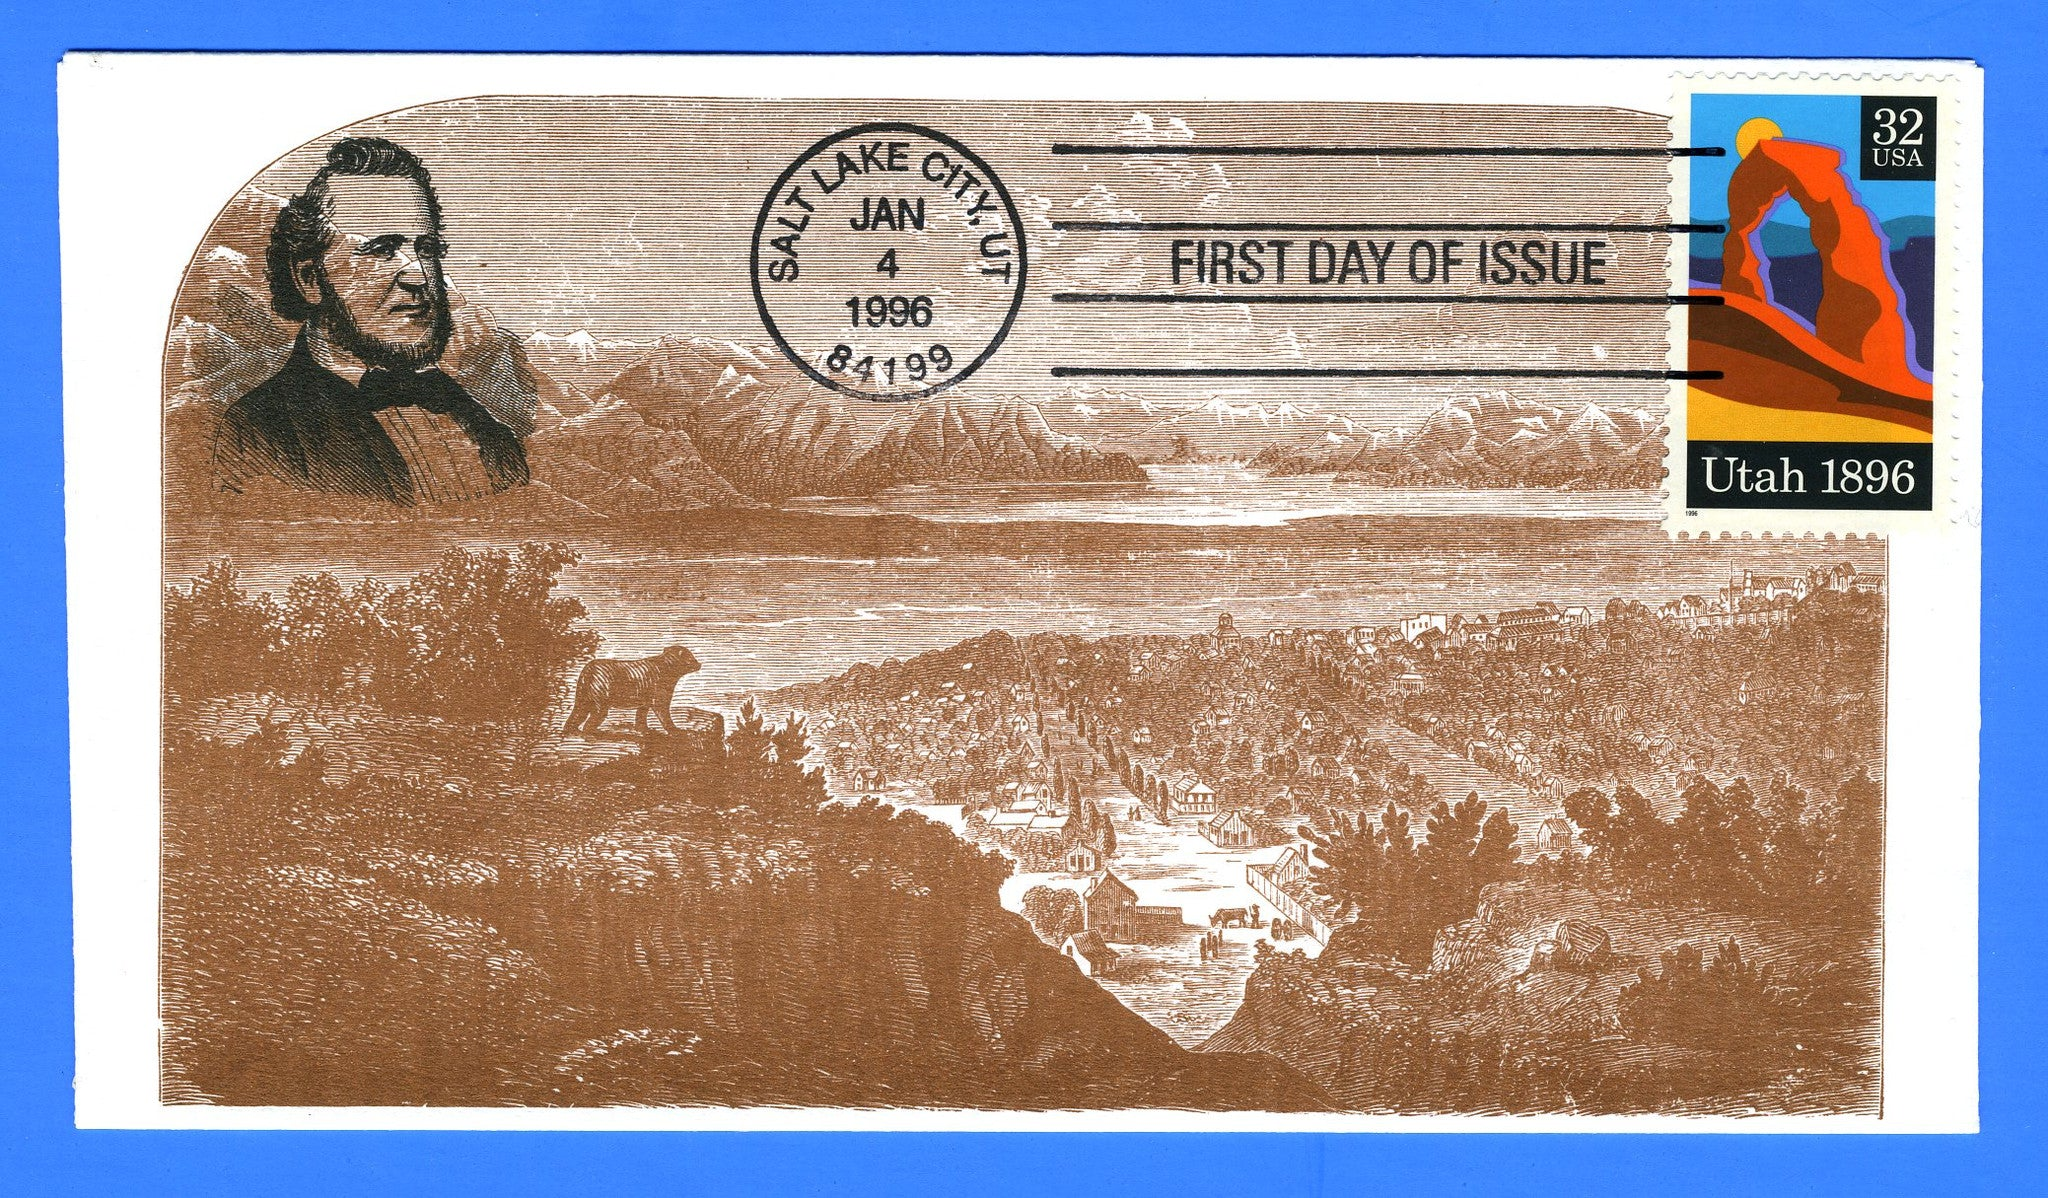 Scott 3024 Utah Centennial First Day Cover by S & T Cachets